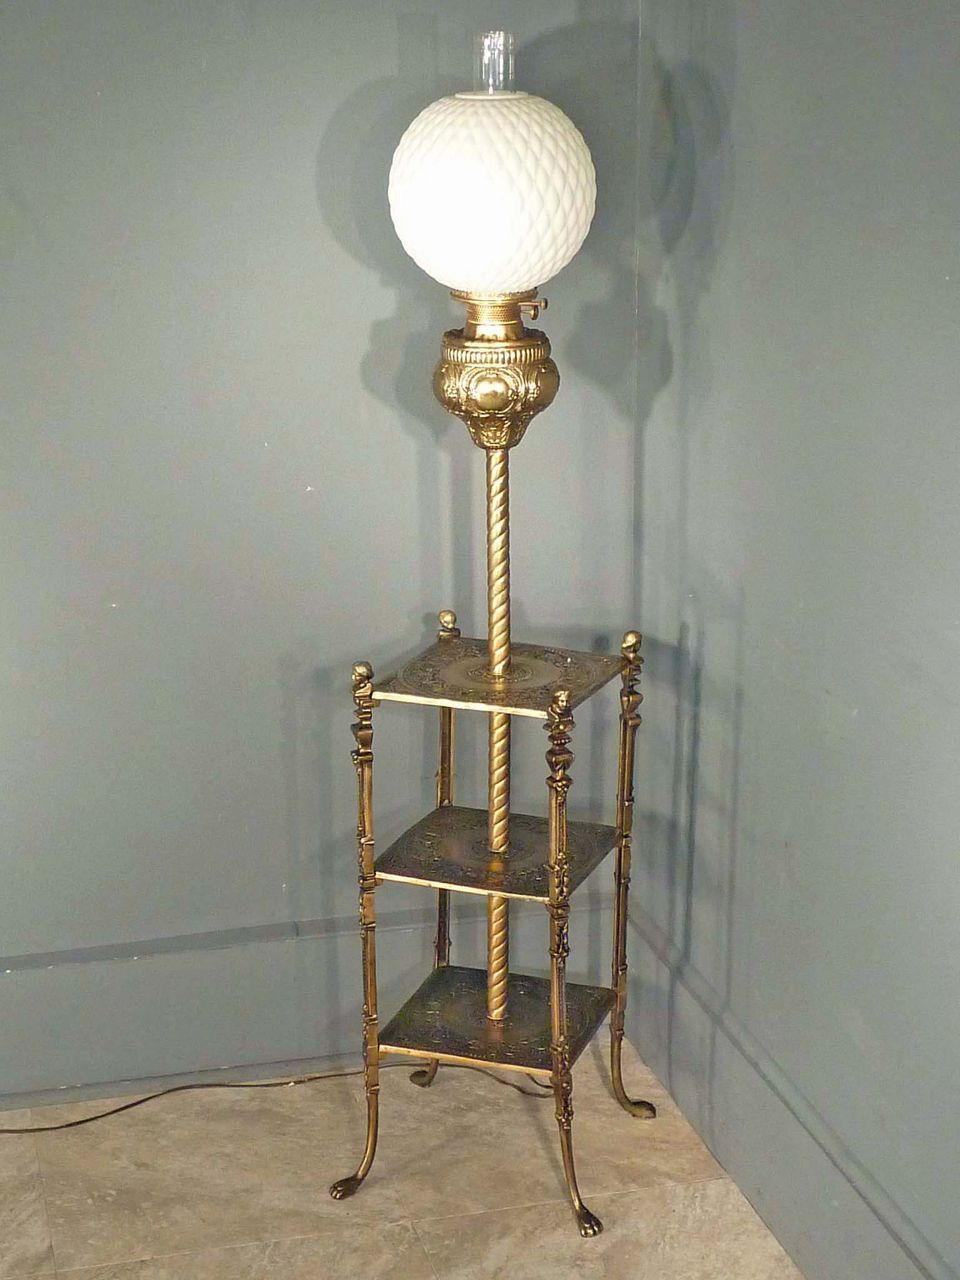 Victorian Piano Floor Lamp With Shelves From Antiquesonhanover On Ruby Lane Floor Lamp Styles Floor Lamp With Shelves Antique Floor Lamps